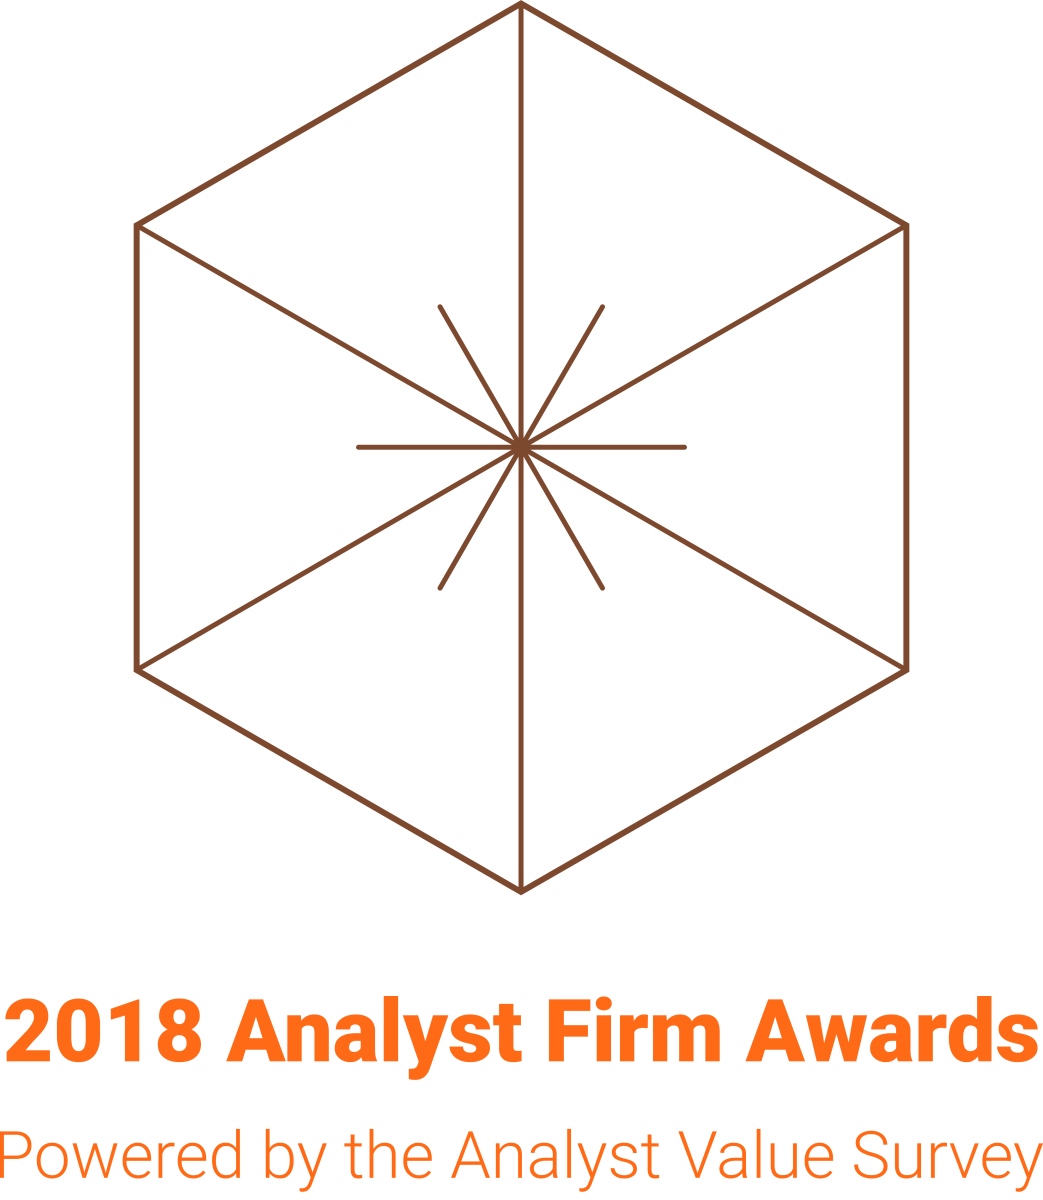 18 win 2018 Analyst Firm Awards